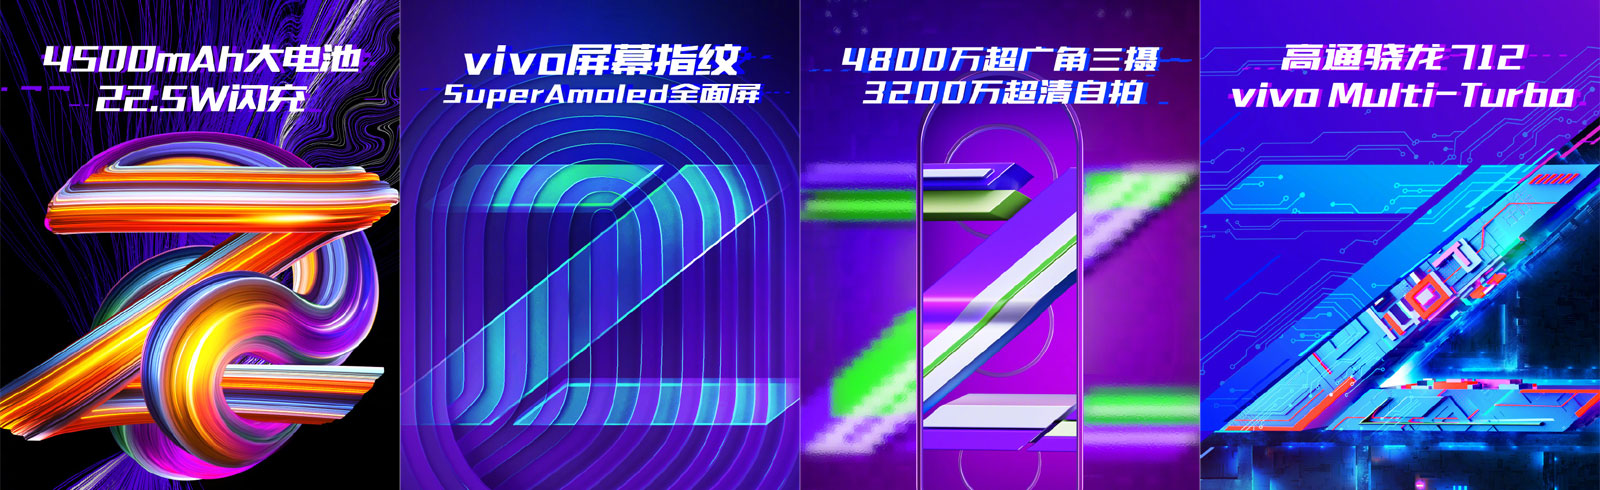 Vivo Z5's main specifications unveiled prior to July 31st announcement